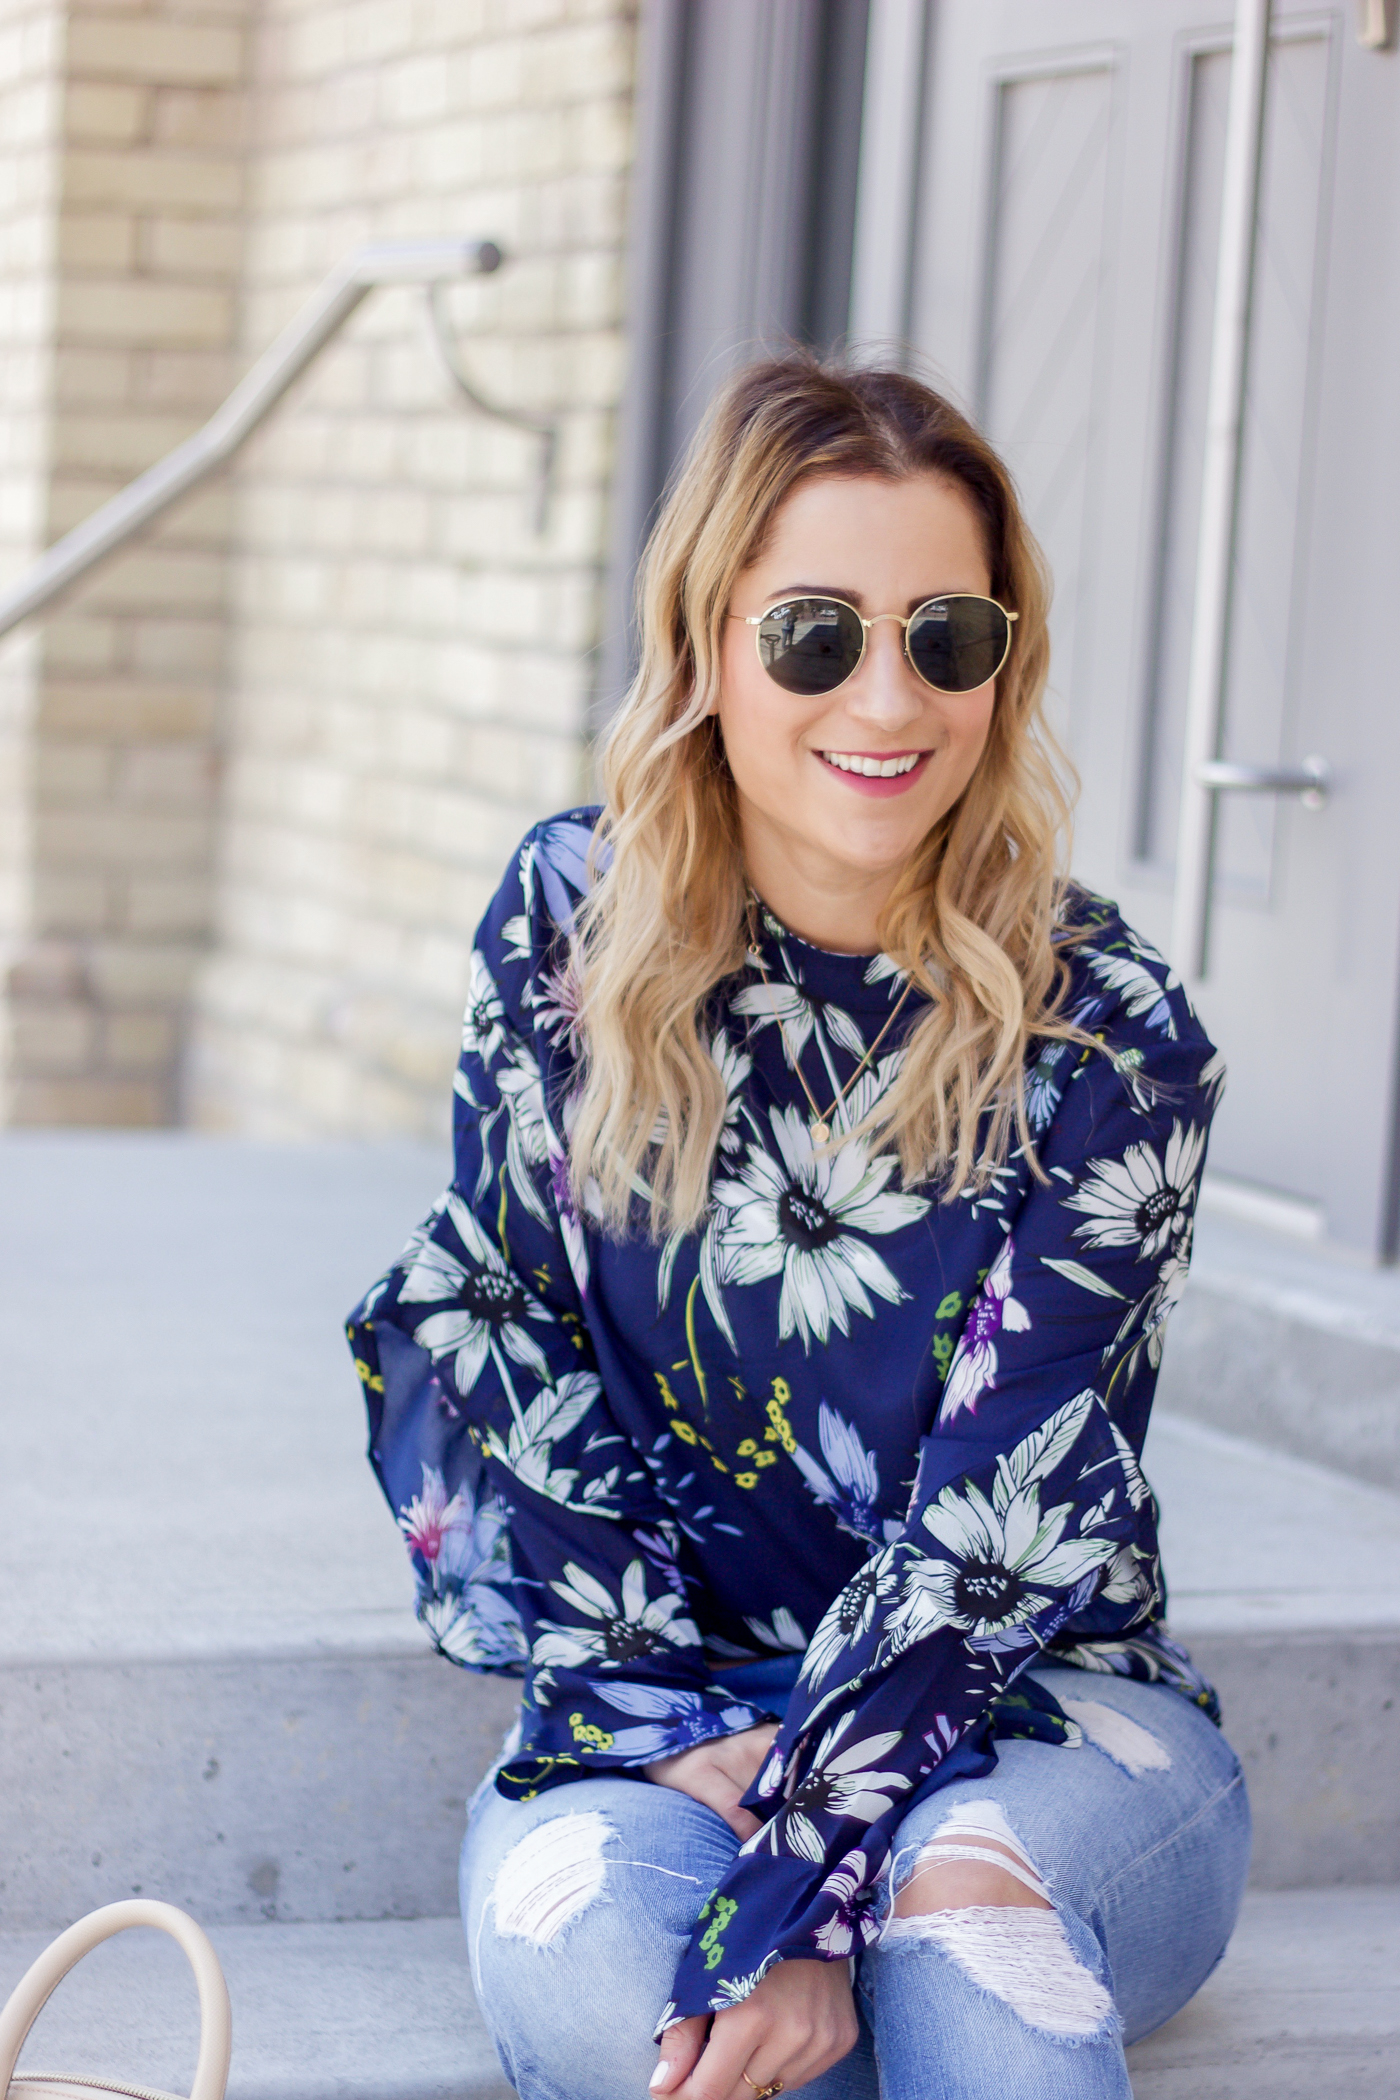 Chic weekend outfit idea, with a navy floral print blouse from Chicwish, and round Ray-Ban sunglasses, worn by lifestyle blogger Jackie Goldhar from Toronto, Canada